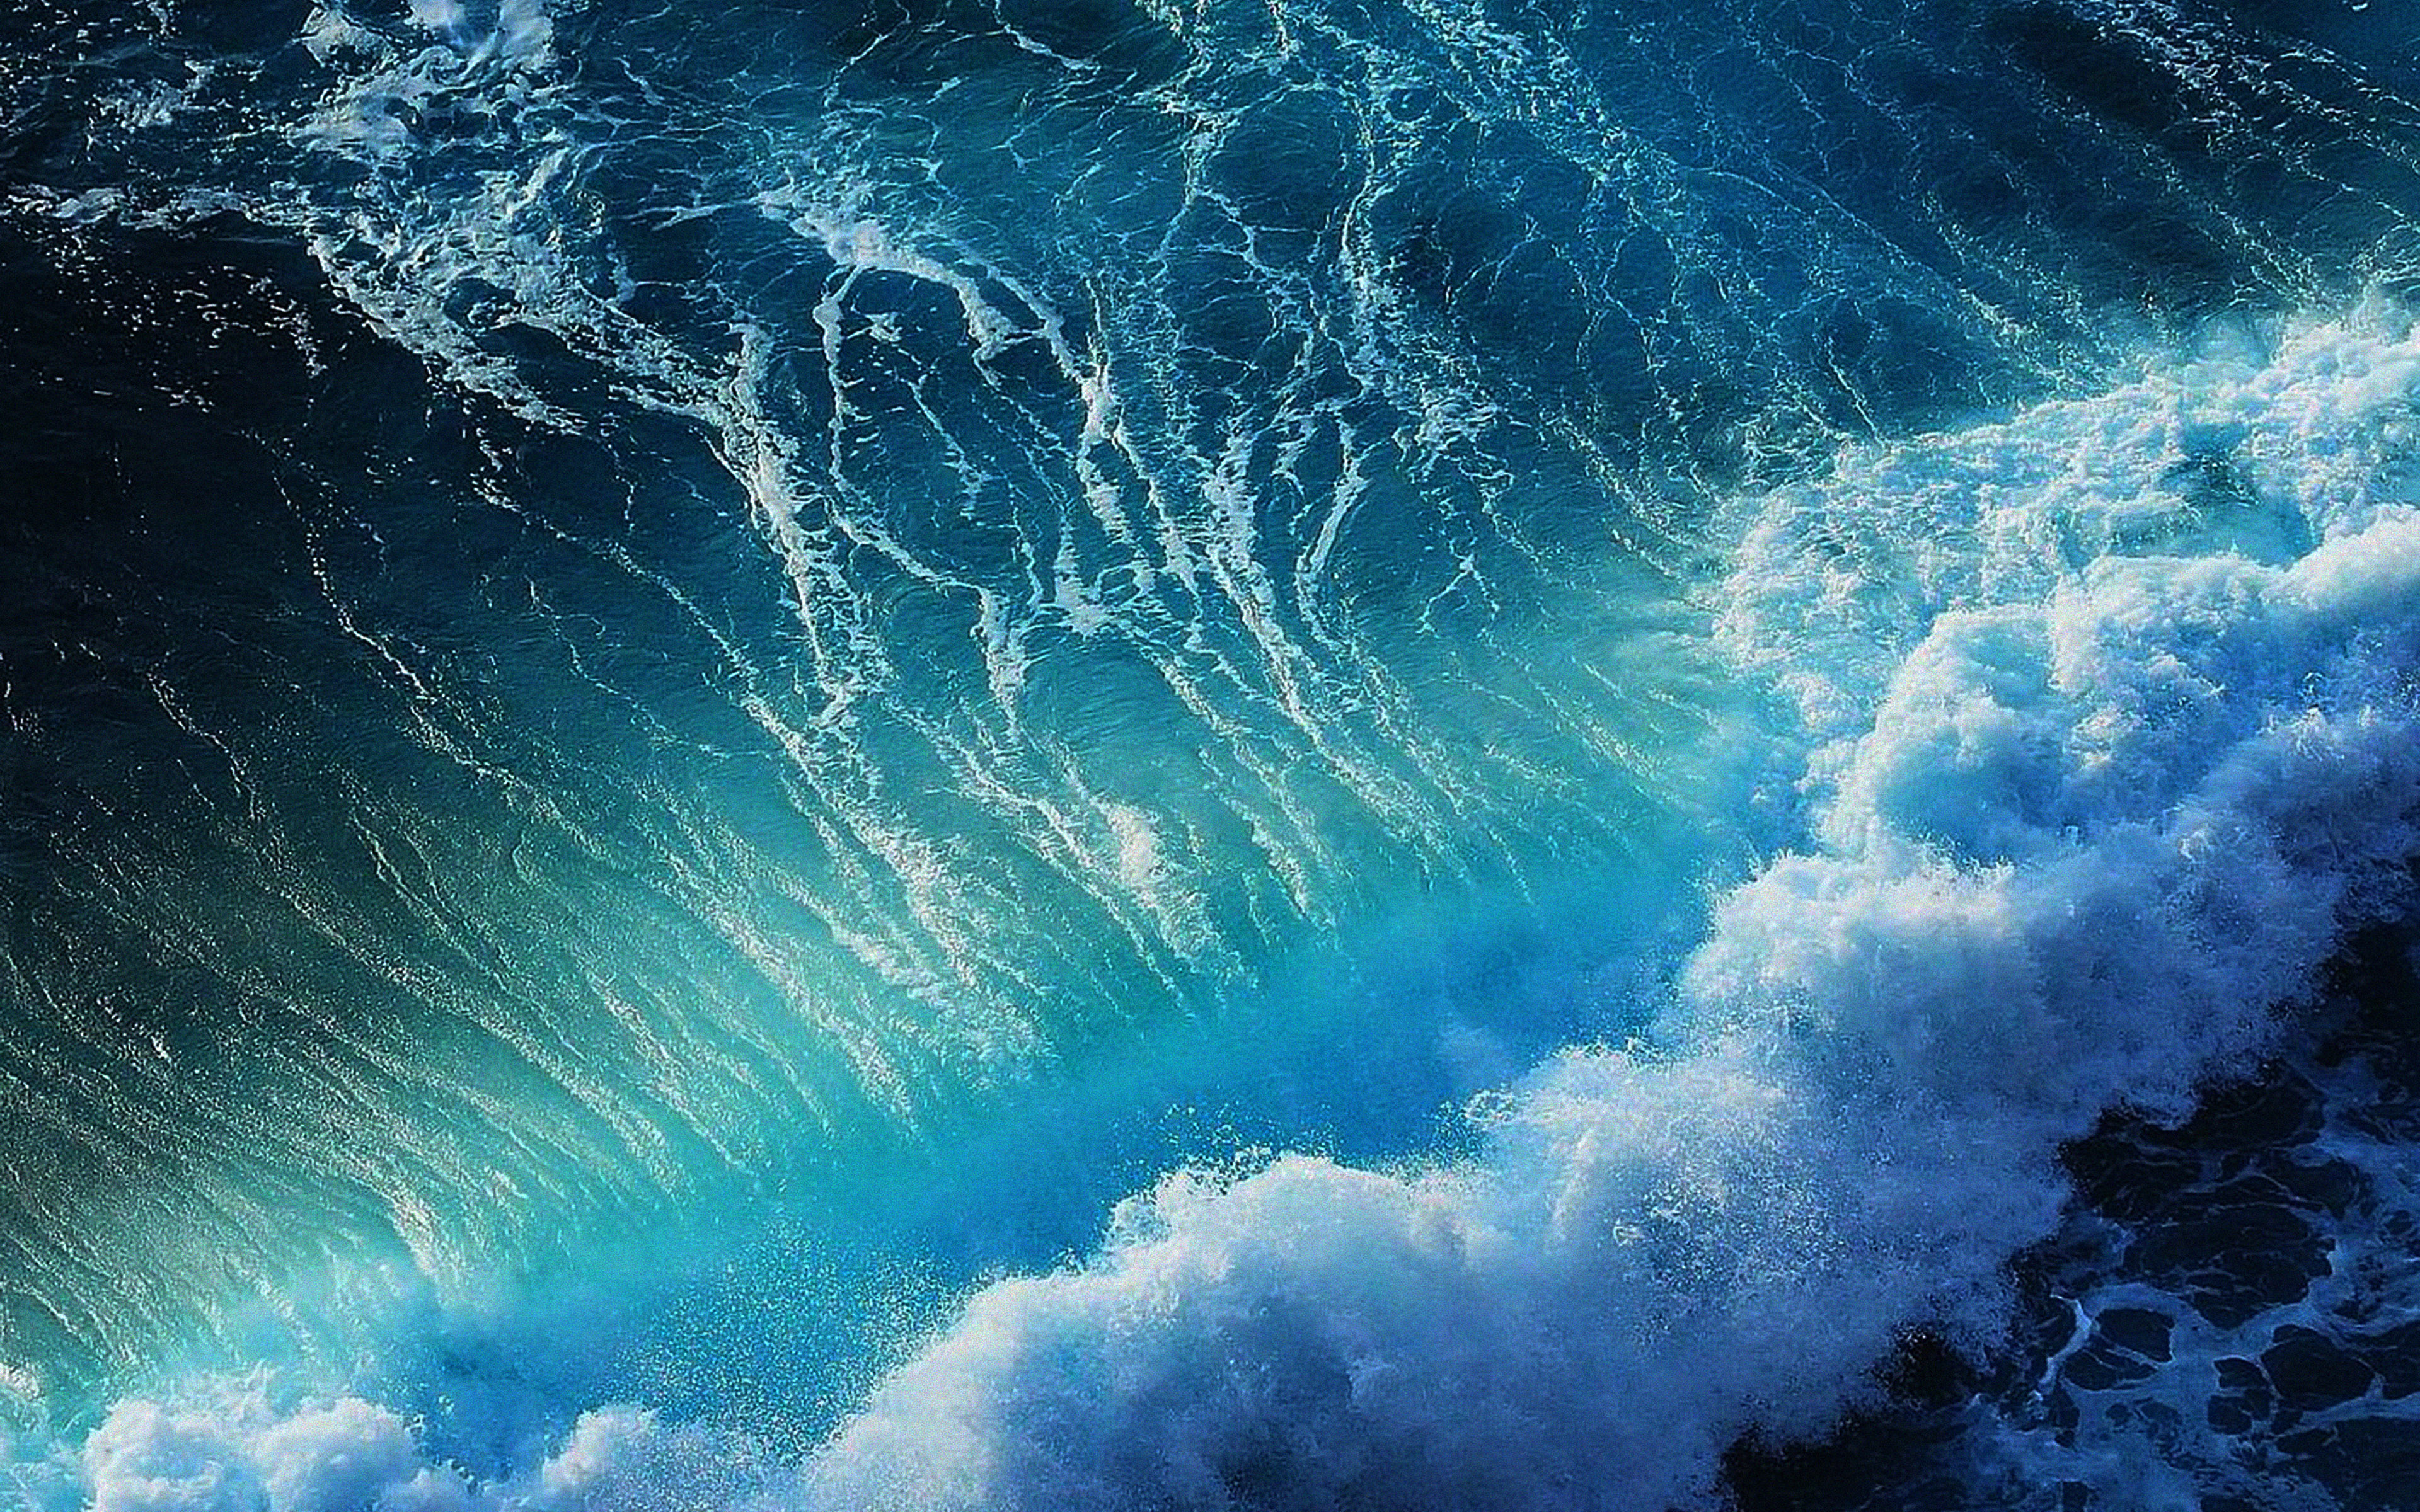 Pretty Fall Iphone Wallpaper Me18 Wave California Ocean Papers Co